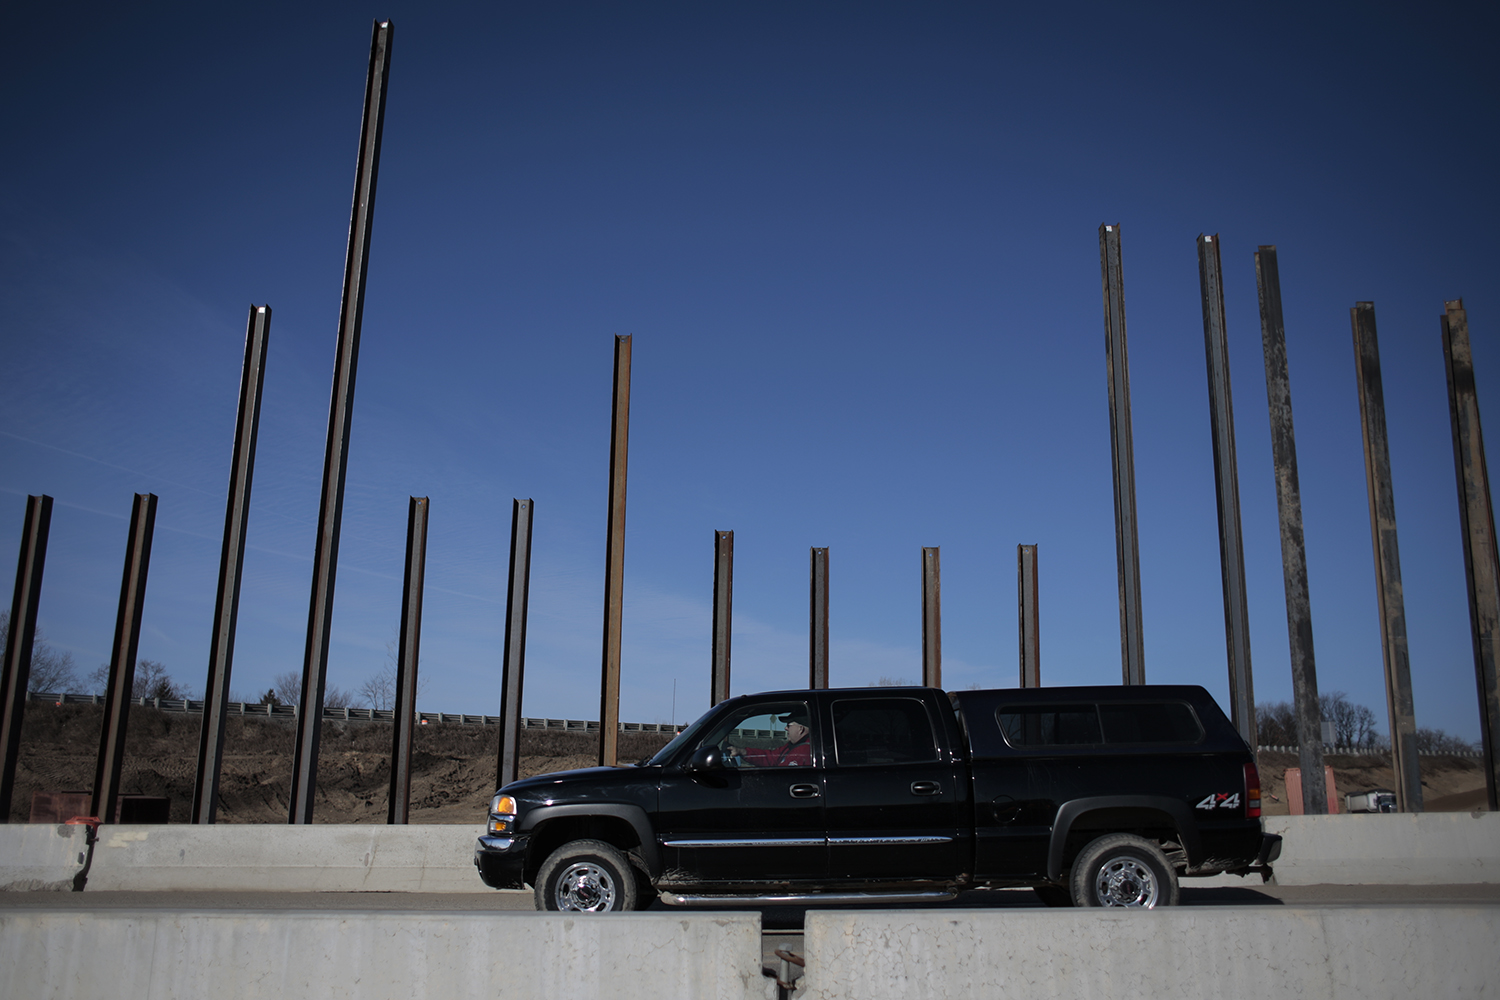 A motorist passes by the supports for the new bridge on Old US-23 on Wednesday, March 18, 2015 at the I-96 and US-23 Interchange in Brighton. Tim Galloway/Special for DFP